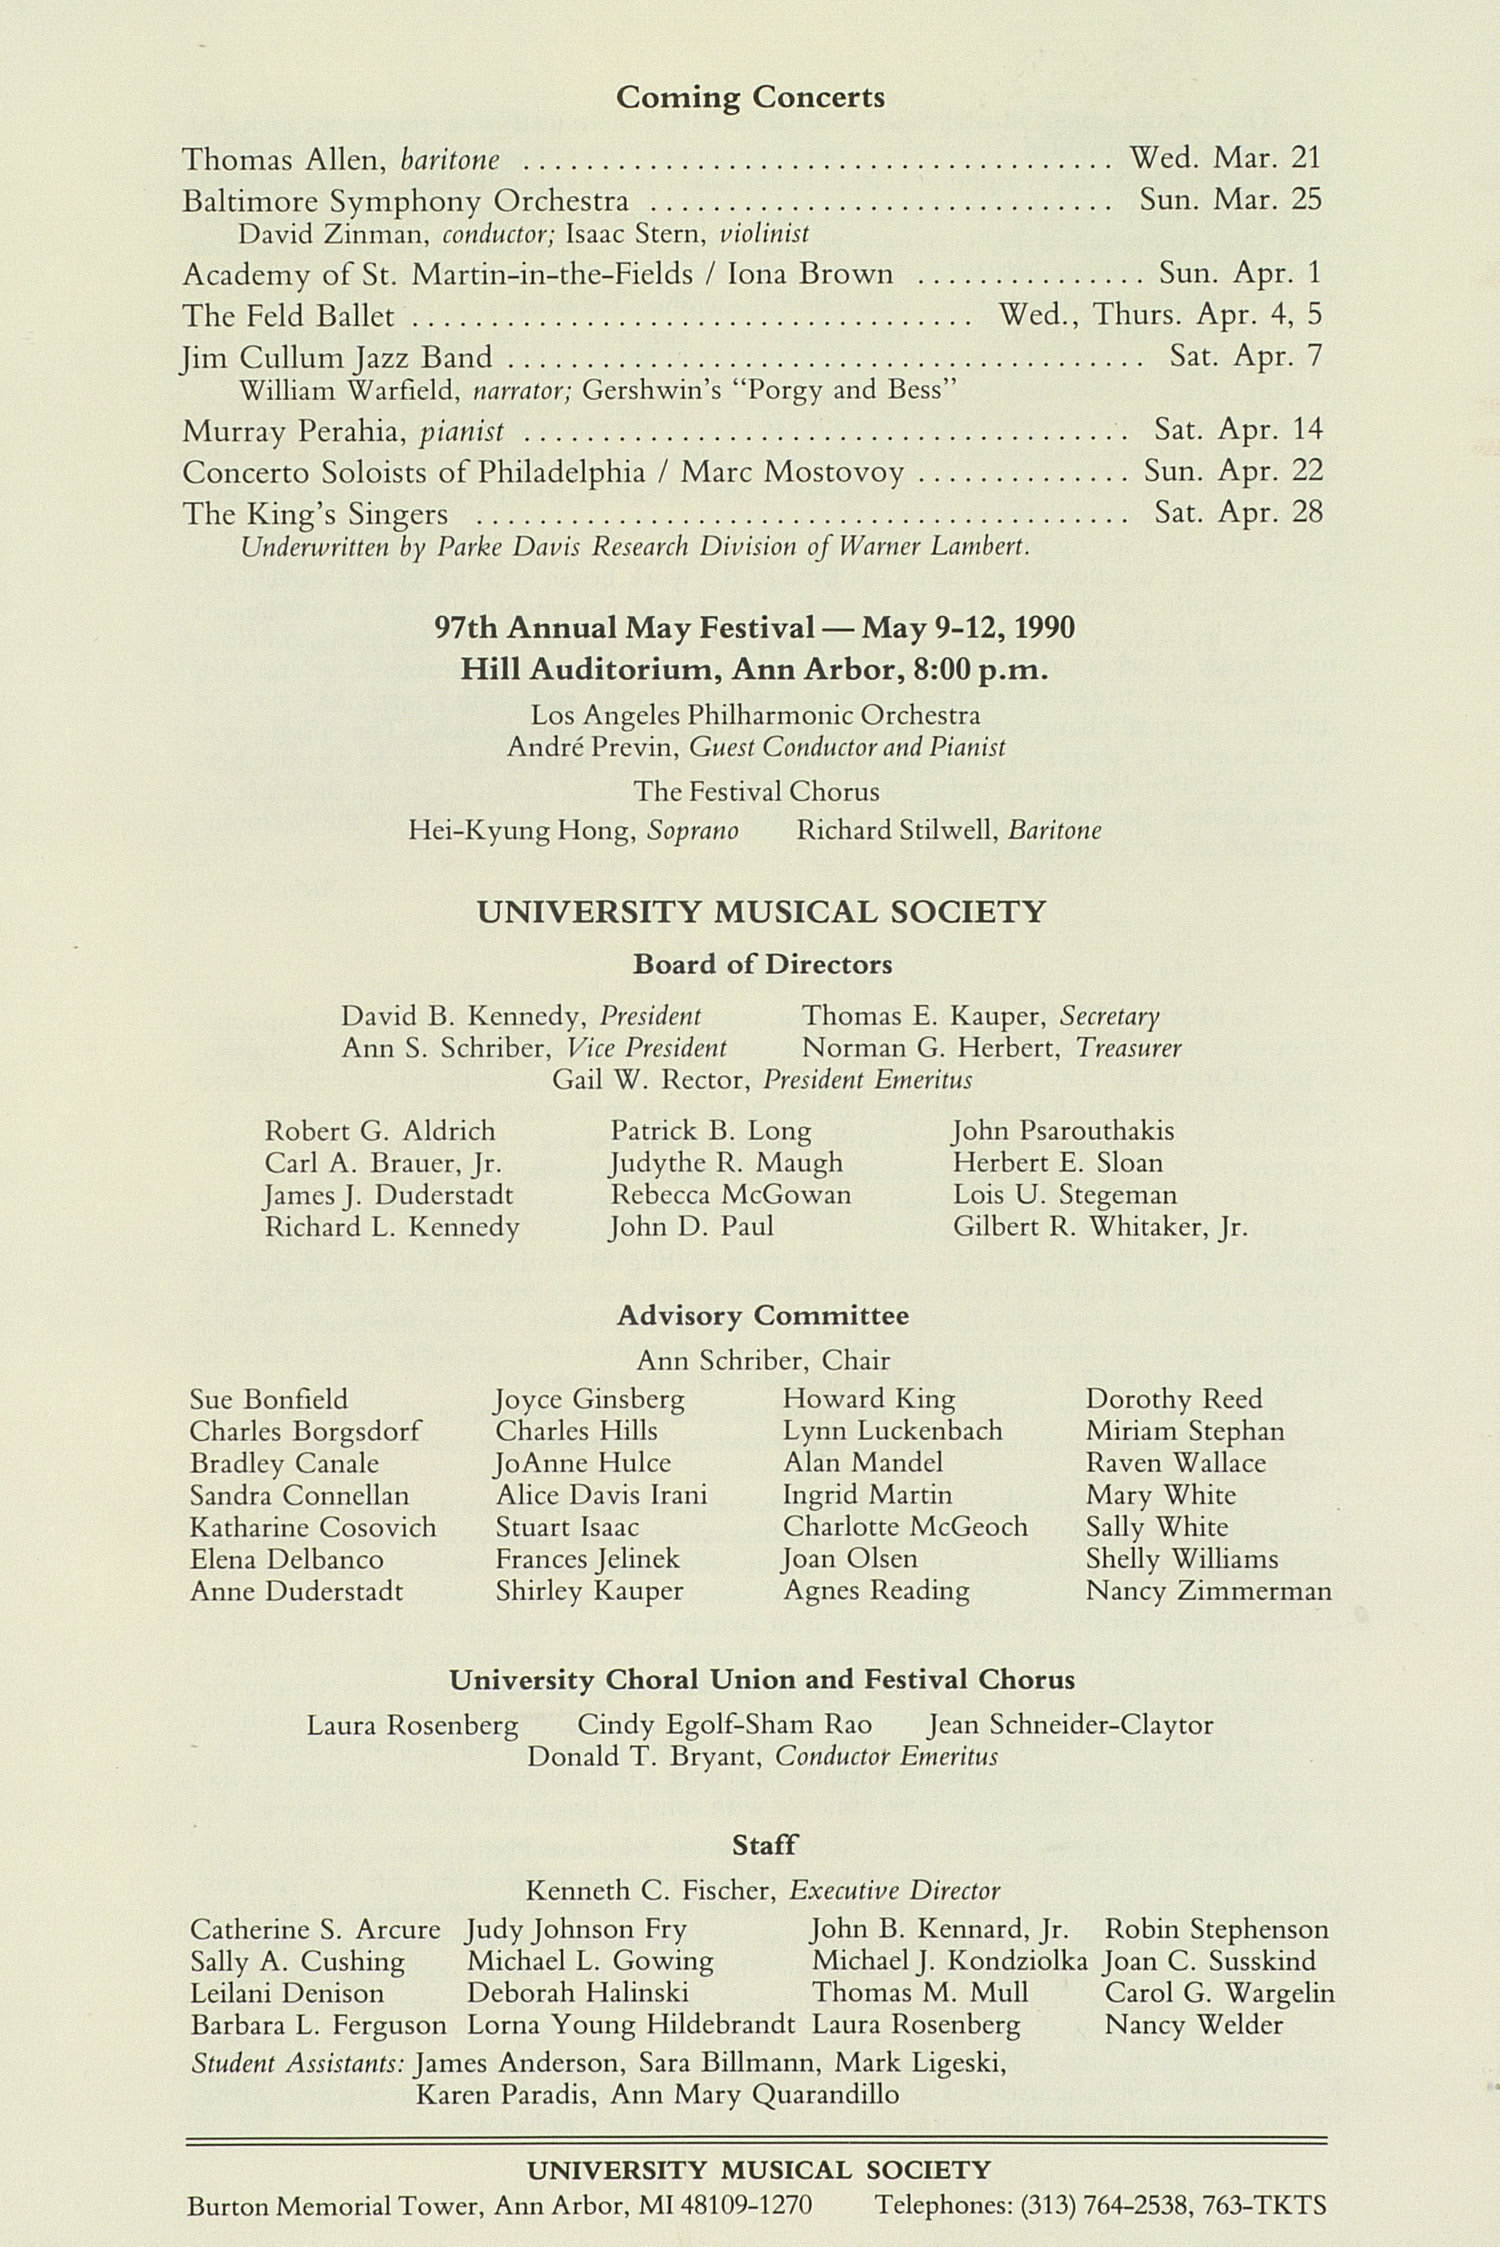 UMS Concert Program, March 17, 1990: International Presentations Of Music & Dance -- Moscow Philharmonic Orchestra image